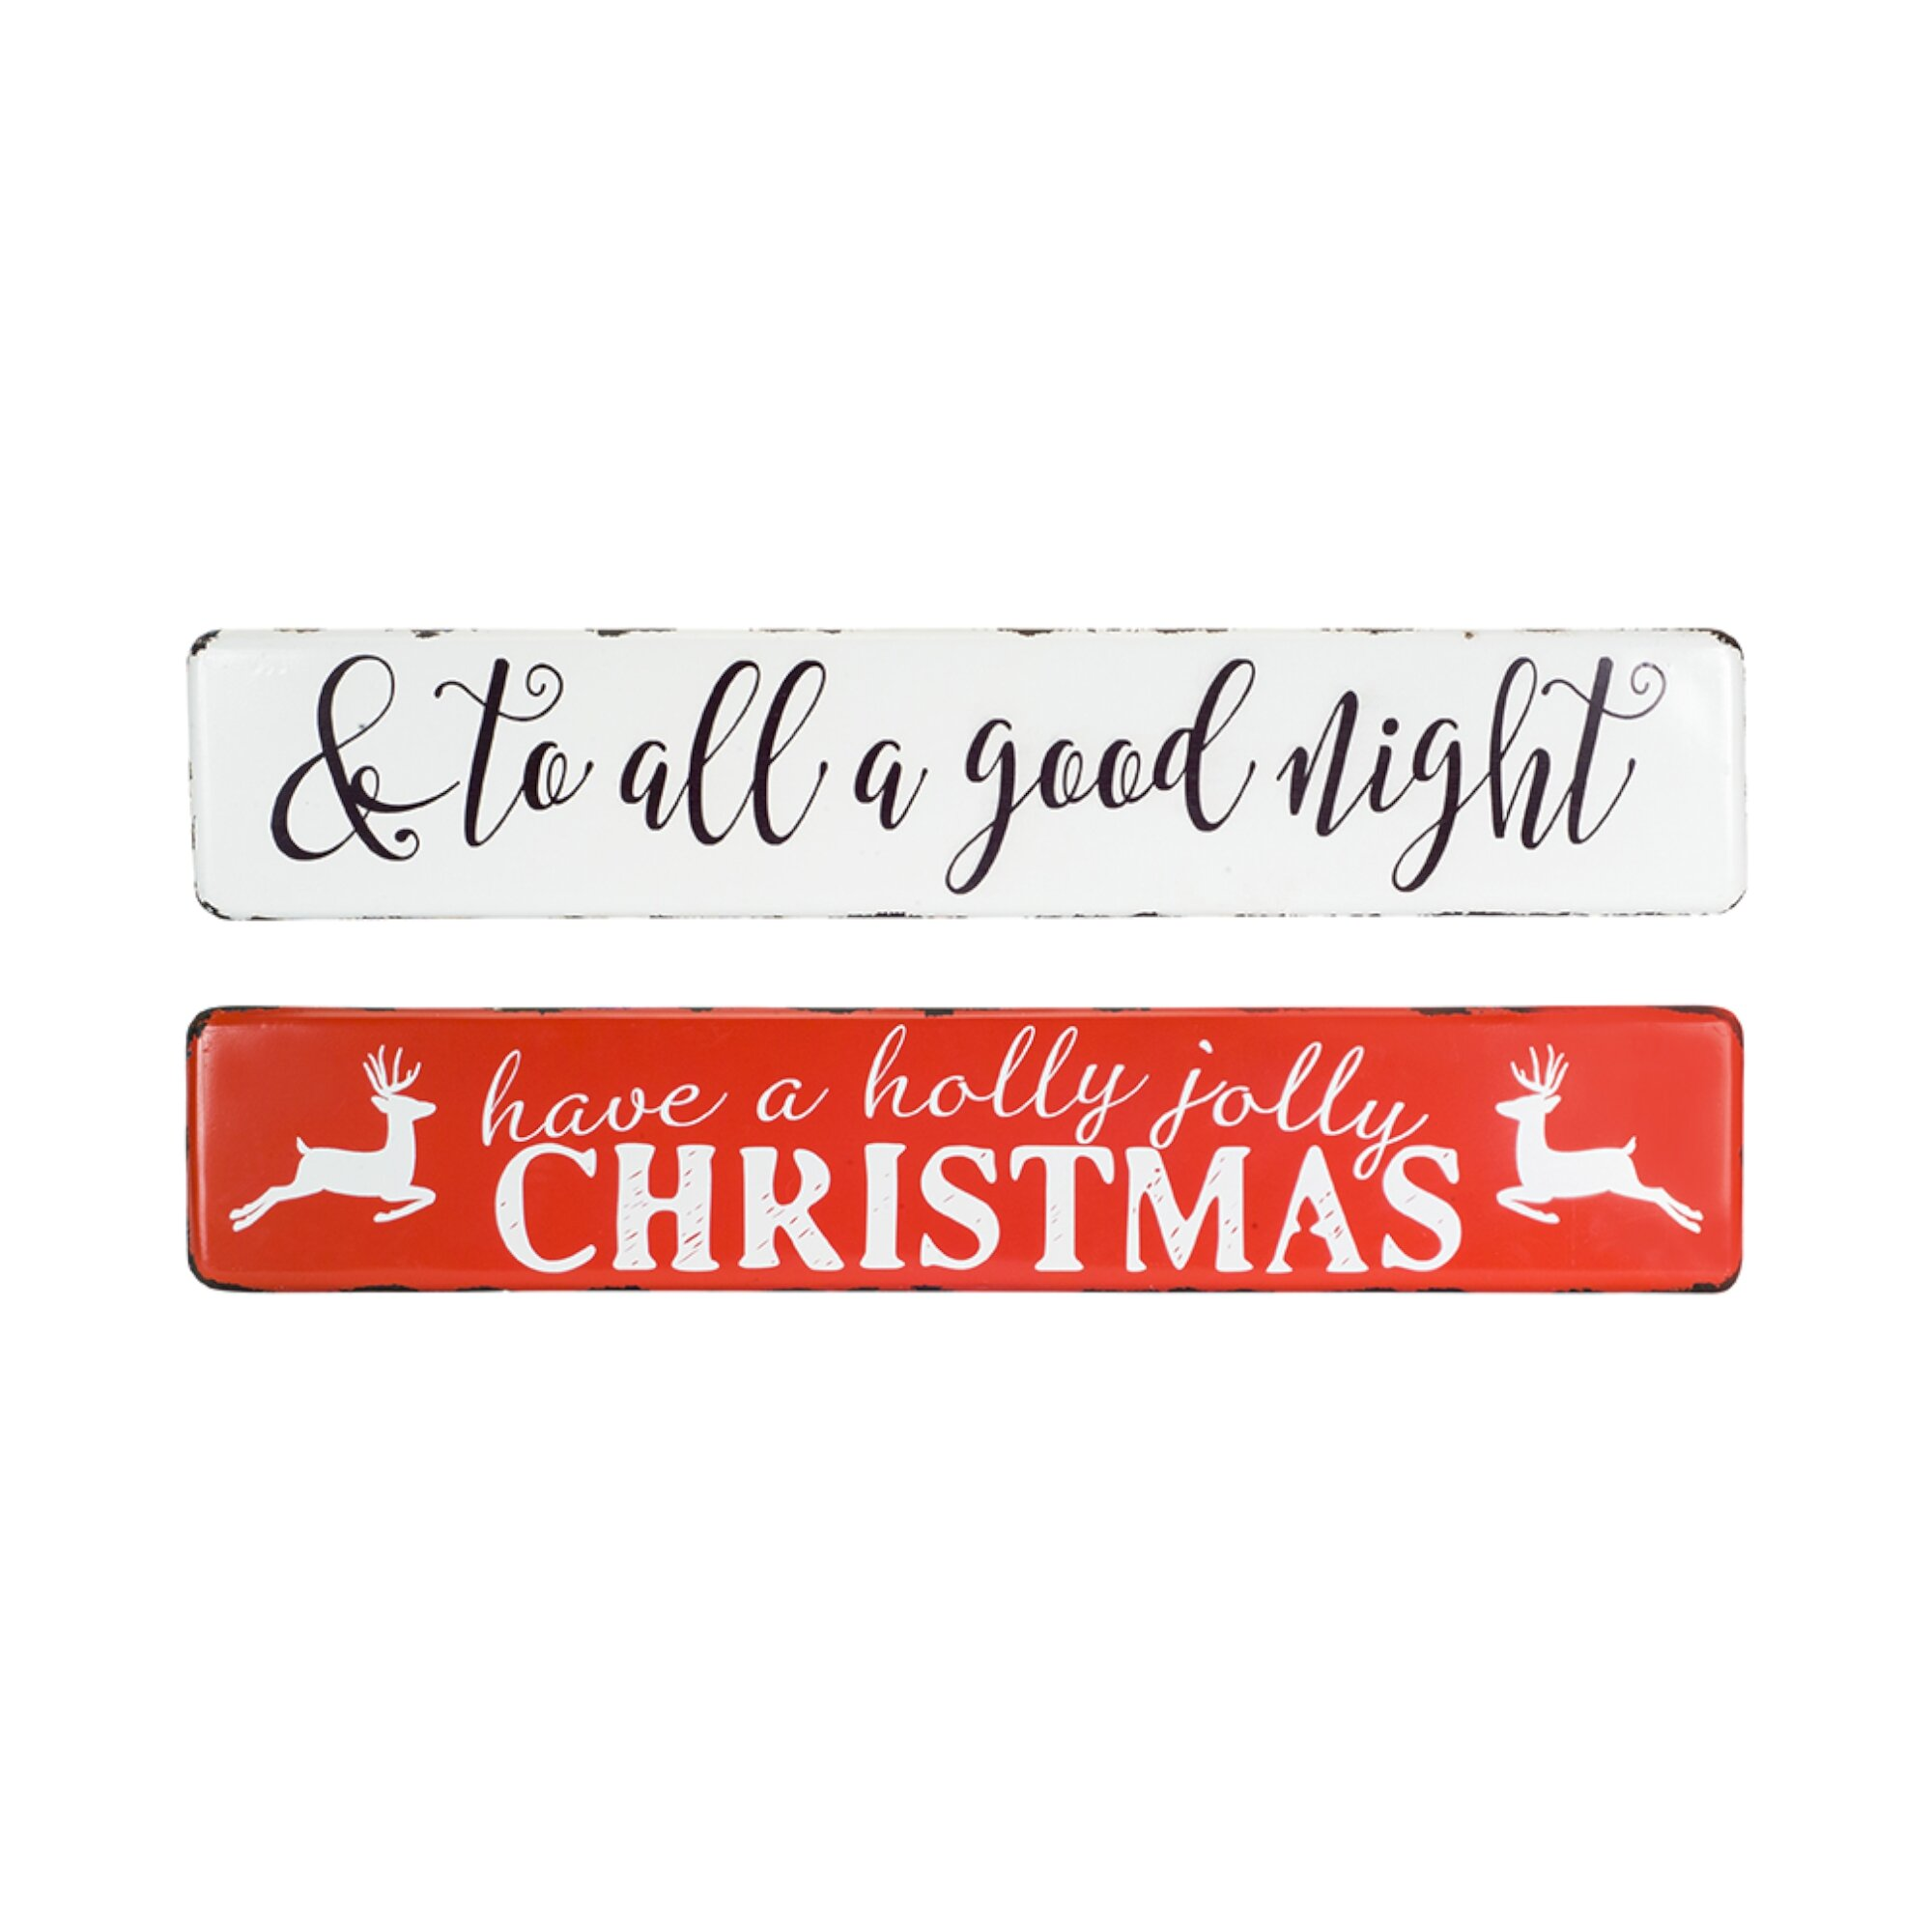 2 Piece Metal Christmas Wall Decor Set